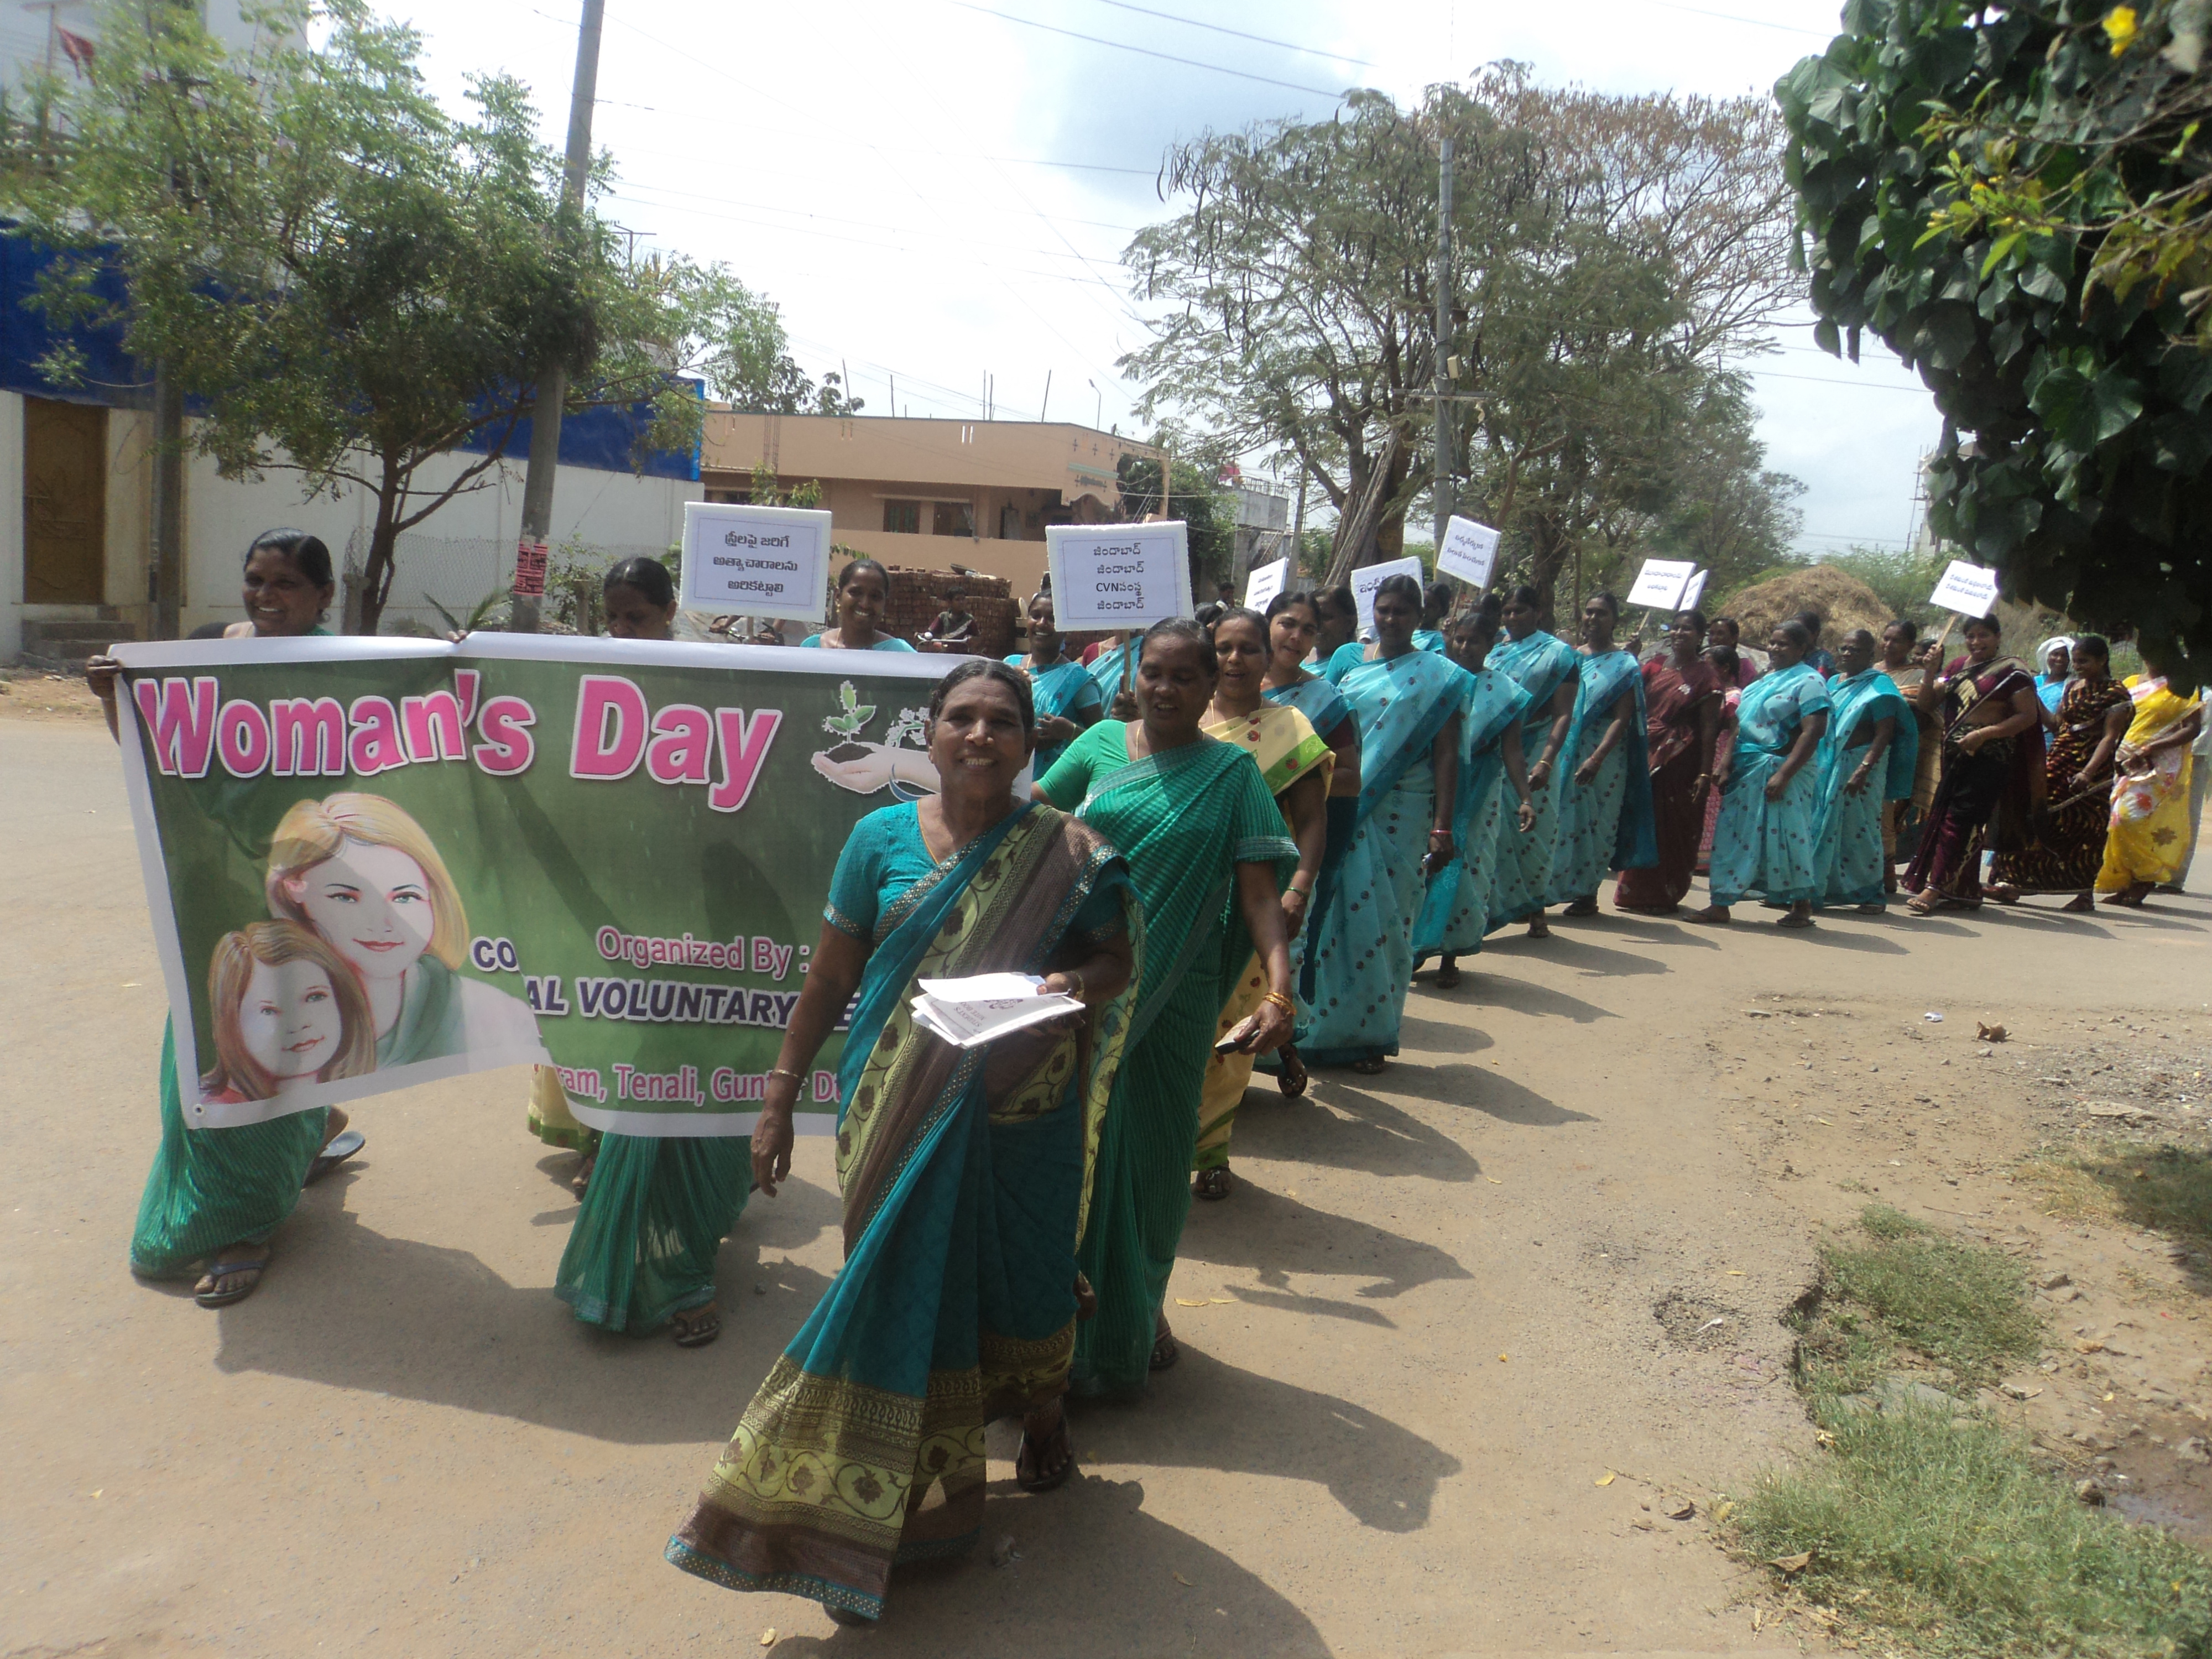 Cancer Awareness, and Personal Hygienic Campaign Rally